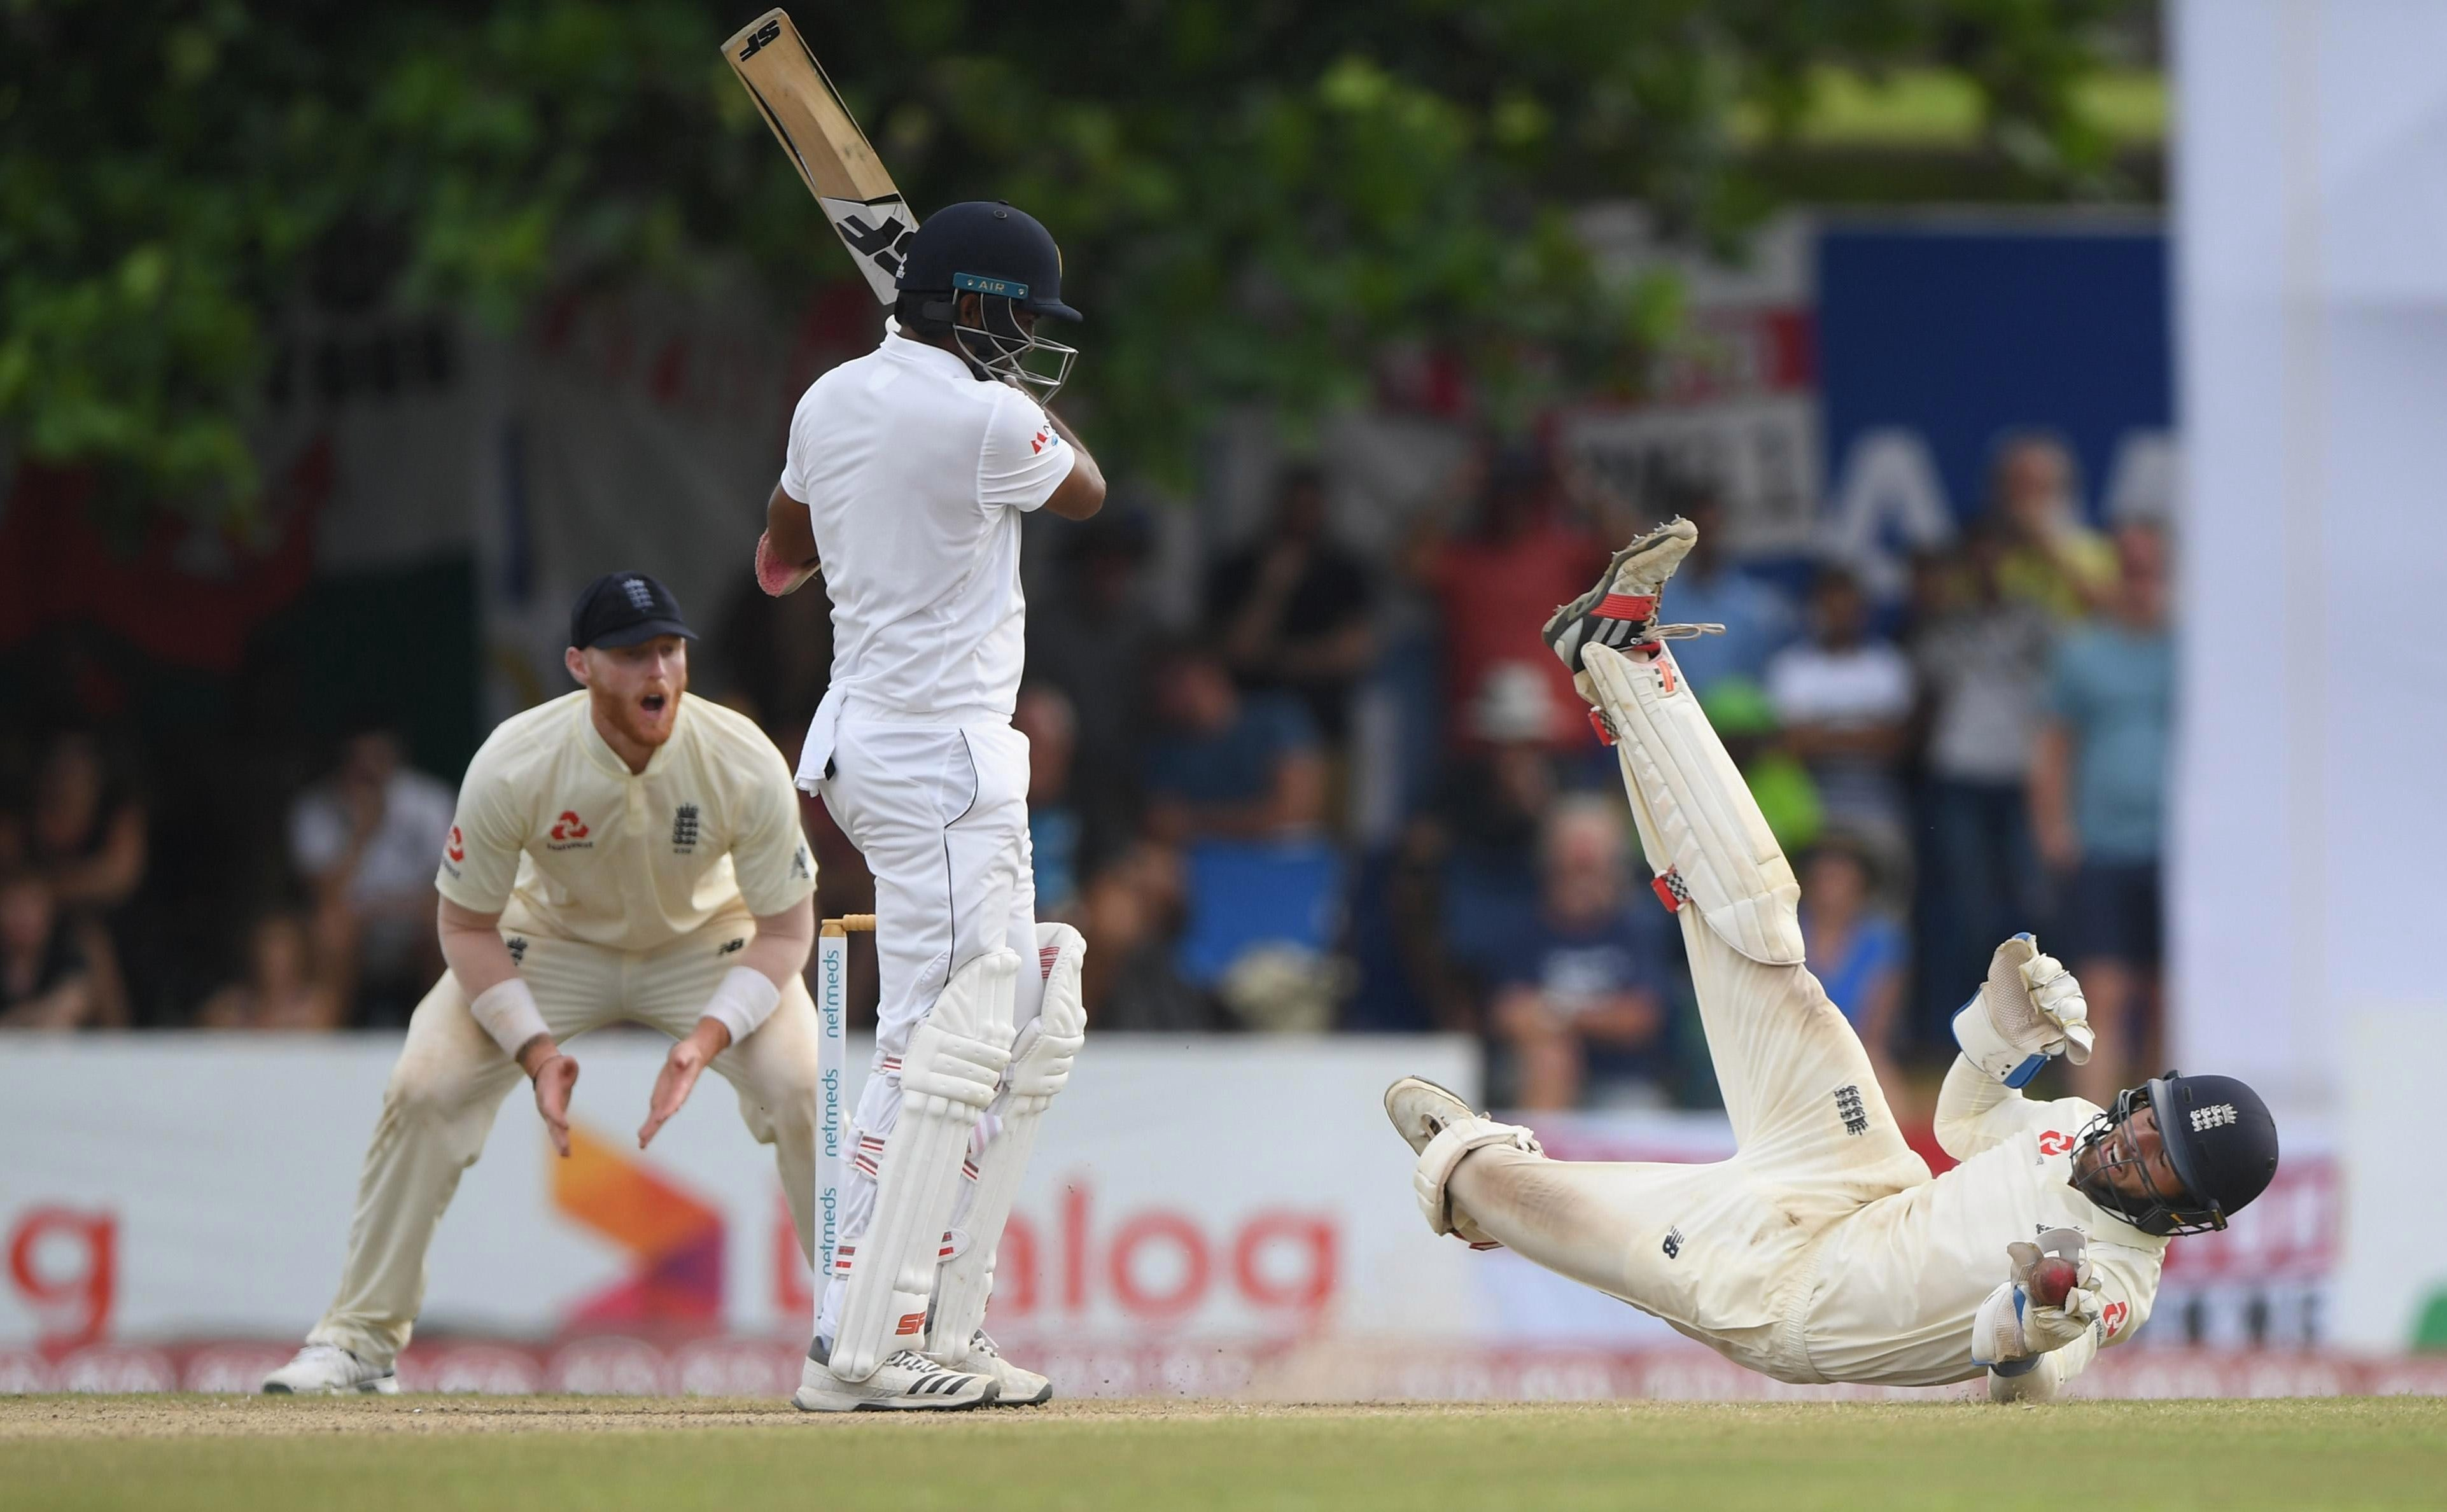 England could have been left to rue a number of dropped catches